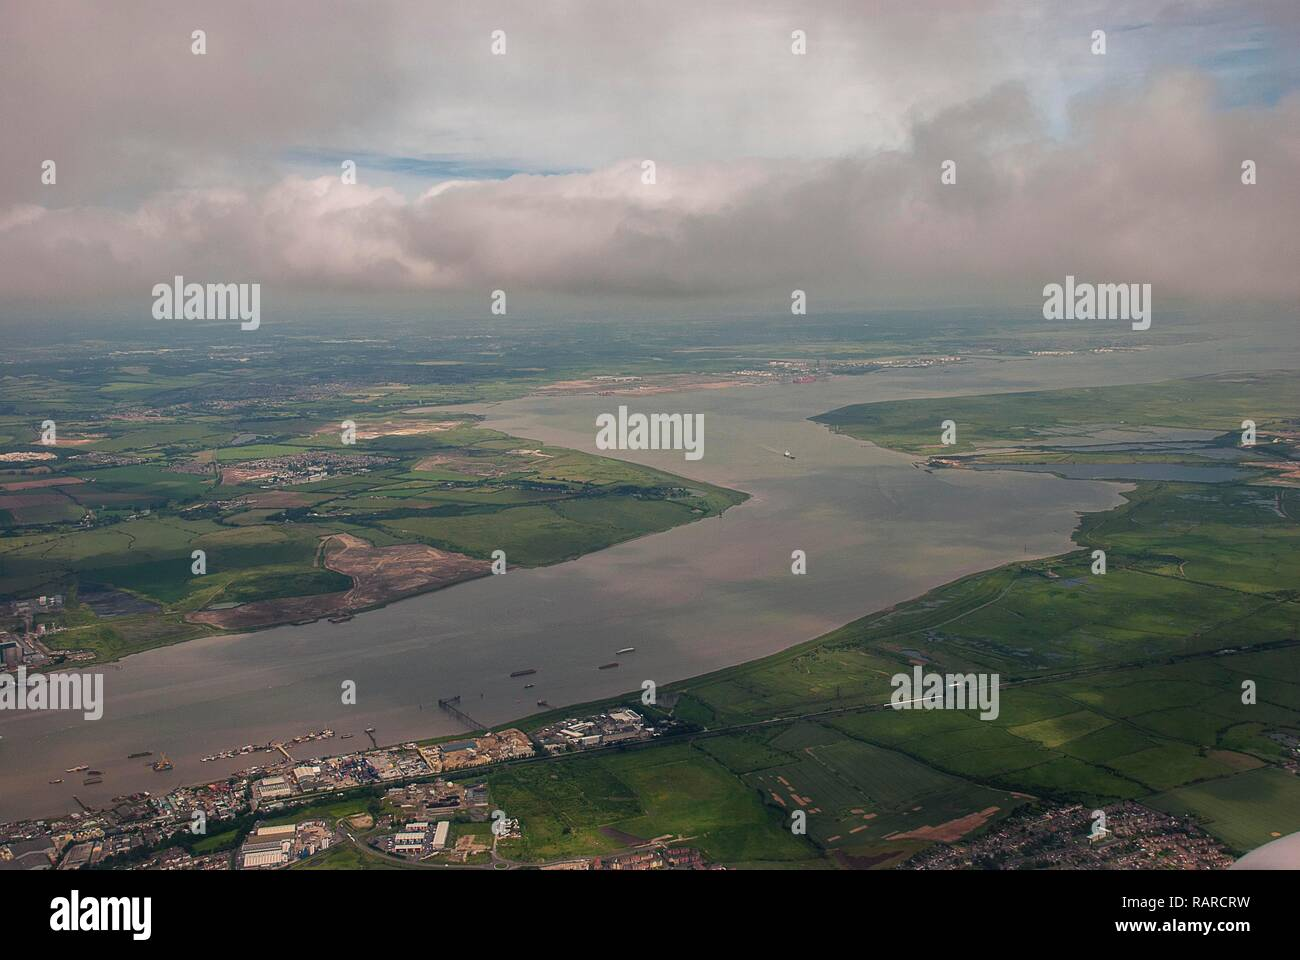 Near the estuary of the River Thames in Kent, England - Stock Image